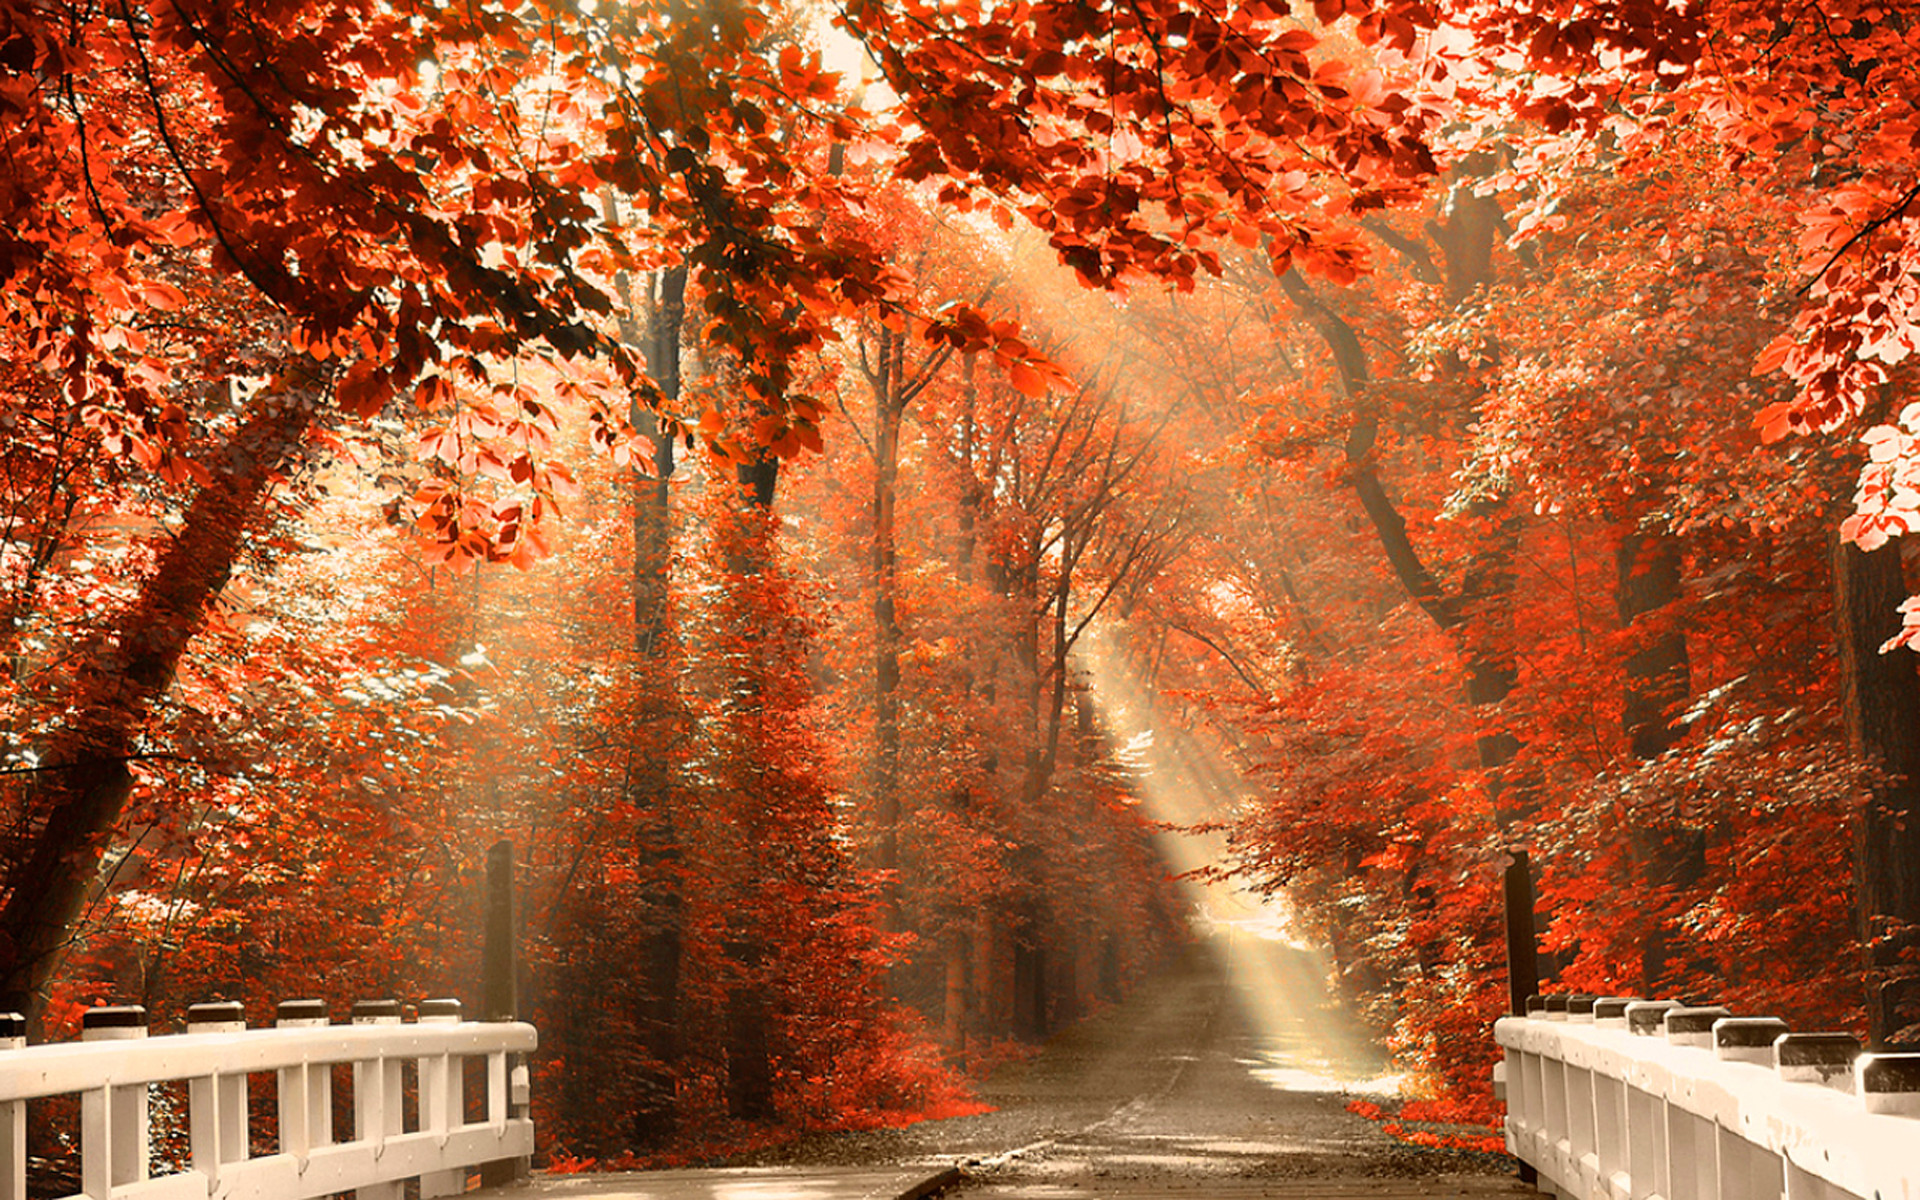 Fall Foliage Wallpaper For Desktop 81 Images